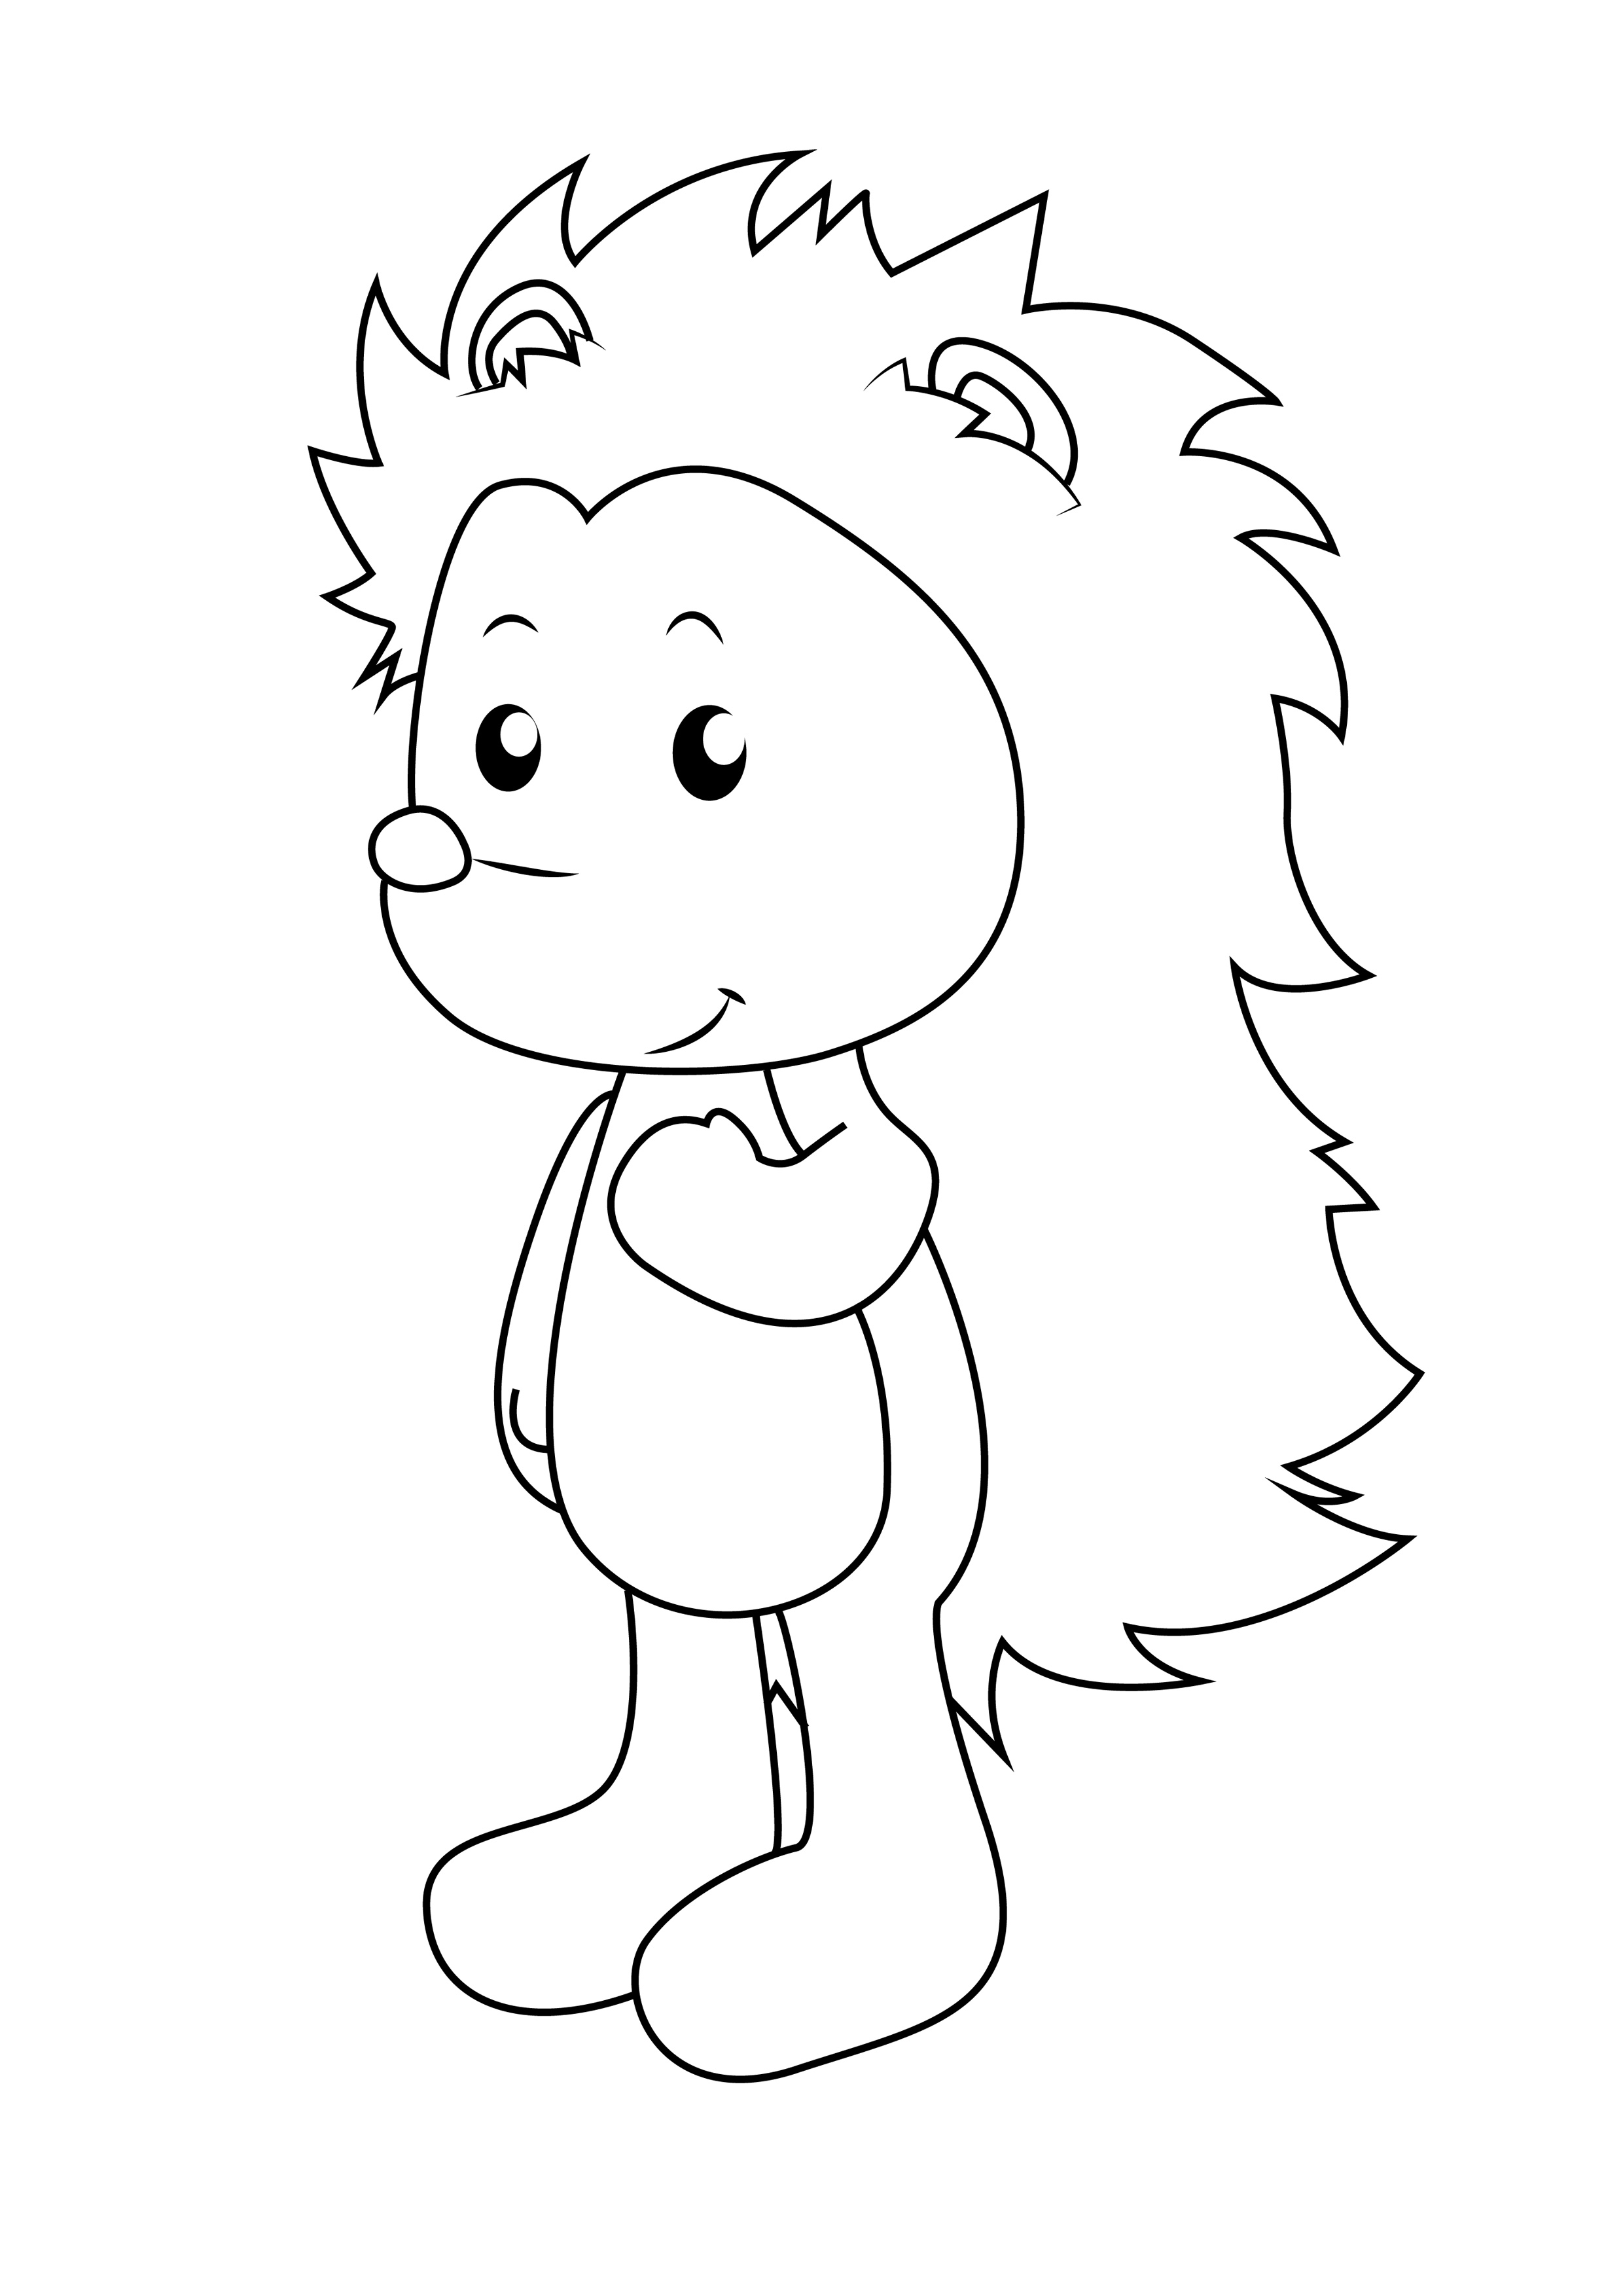 free hedgehog coloring pages hedgehogs free printable coloring and activity page for coloring pages hedgehog free